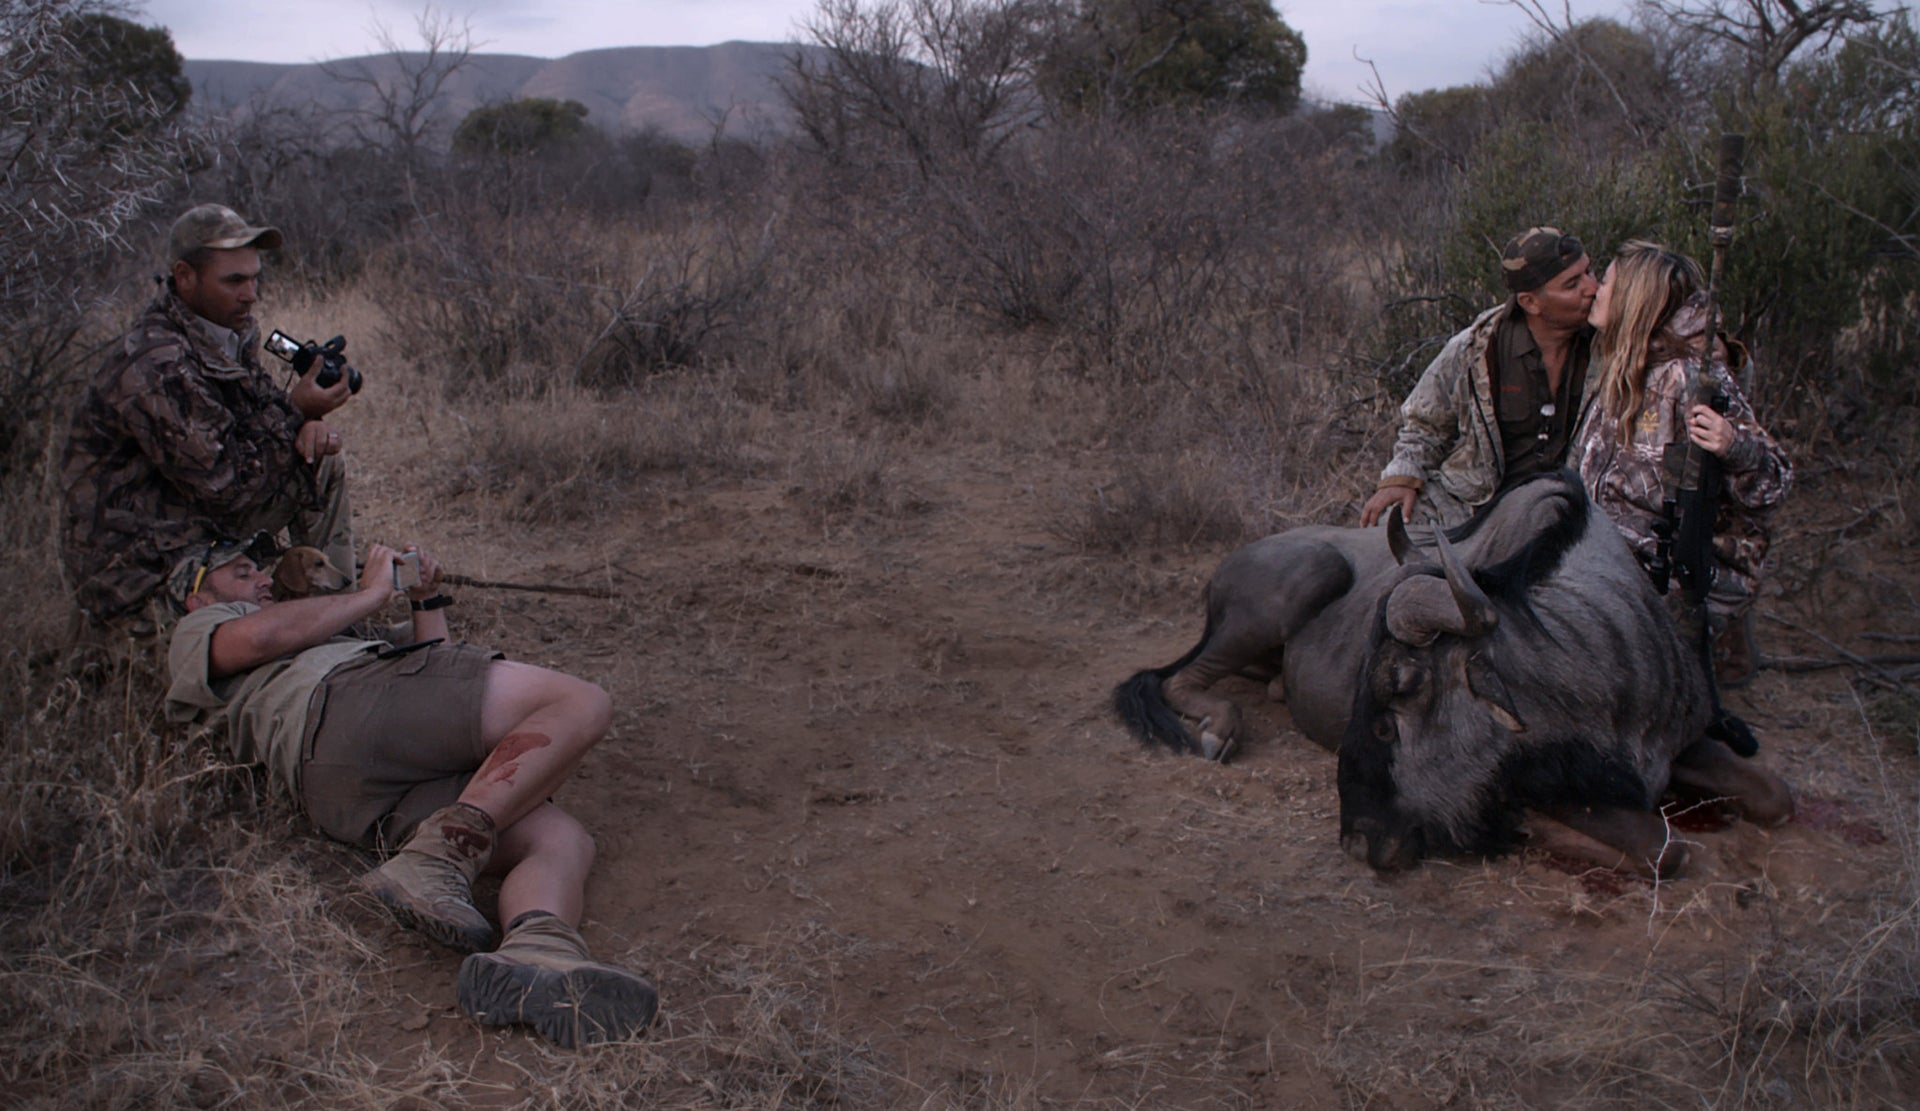 Hunting animals. A frame from the Emmy-winning documentary 'Trophy'